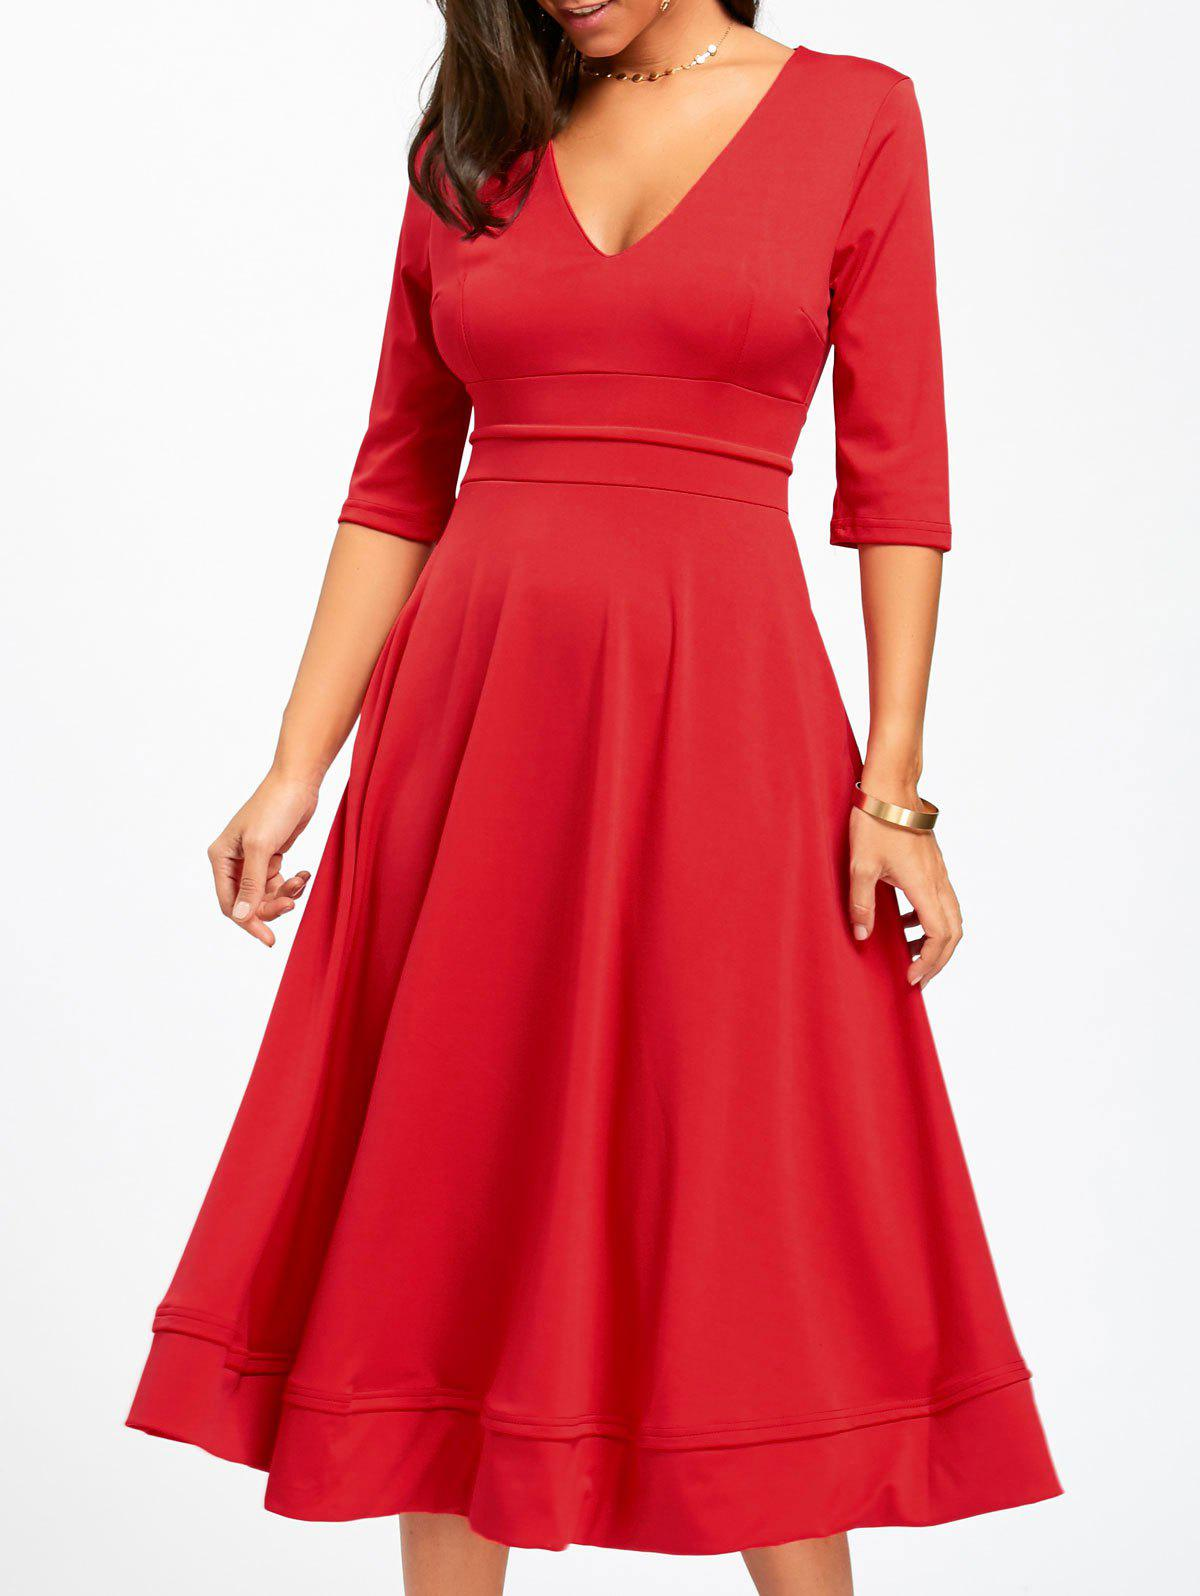 V Neck Fit and Flare Midi Dress - RED 2XL